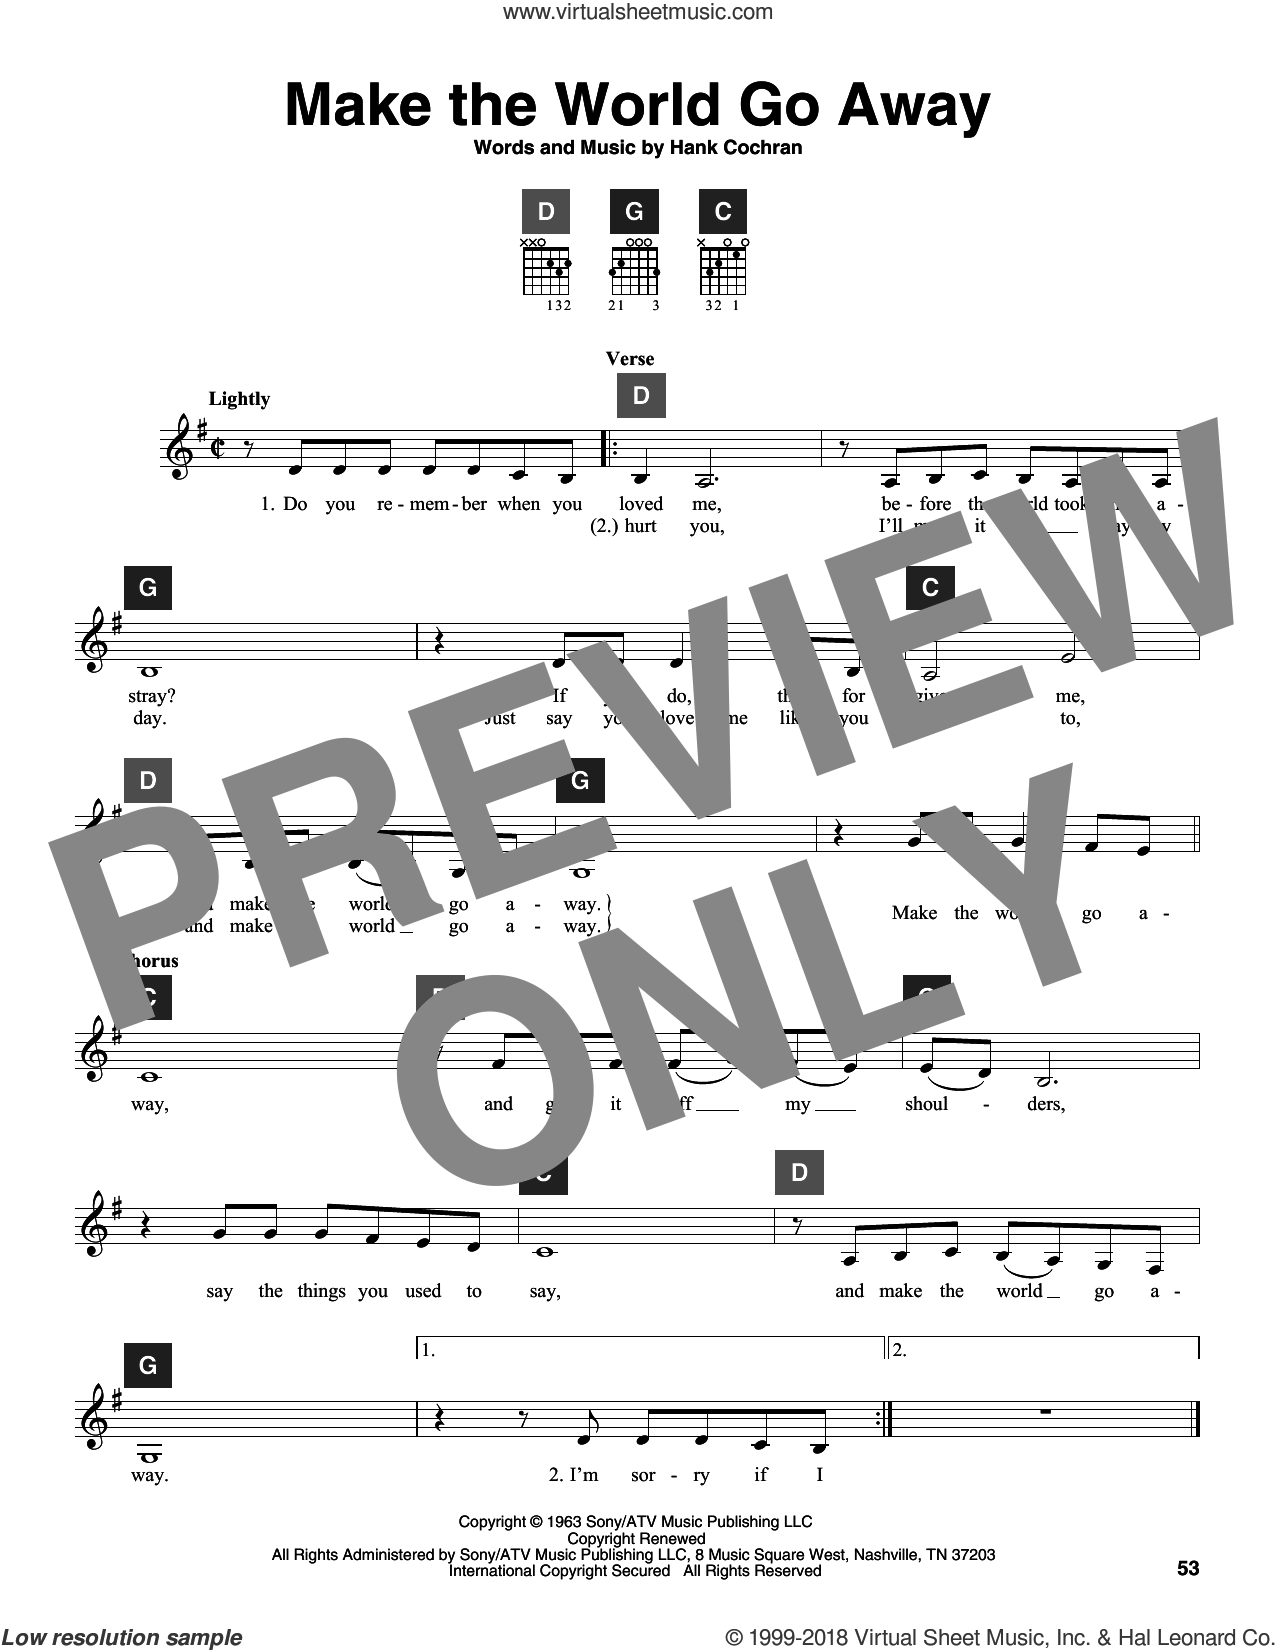 Make The World Go Away sheet music for guitar solo (ChordBuddy system) by Eddy Arnold, Elvis Presley, Travis Perry and Hank Cochran. Score Image Preview.